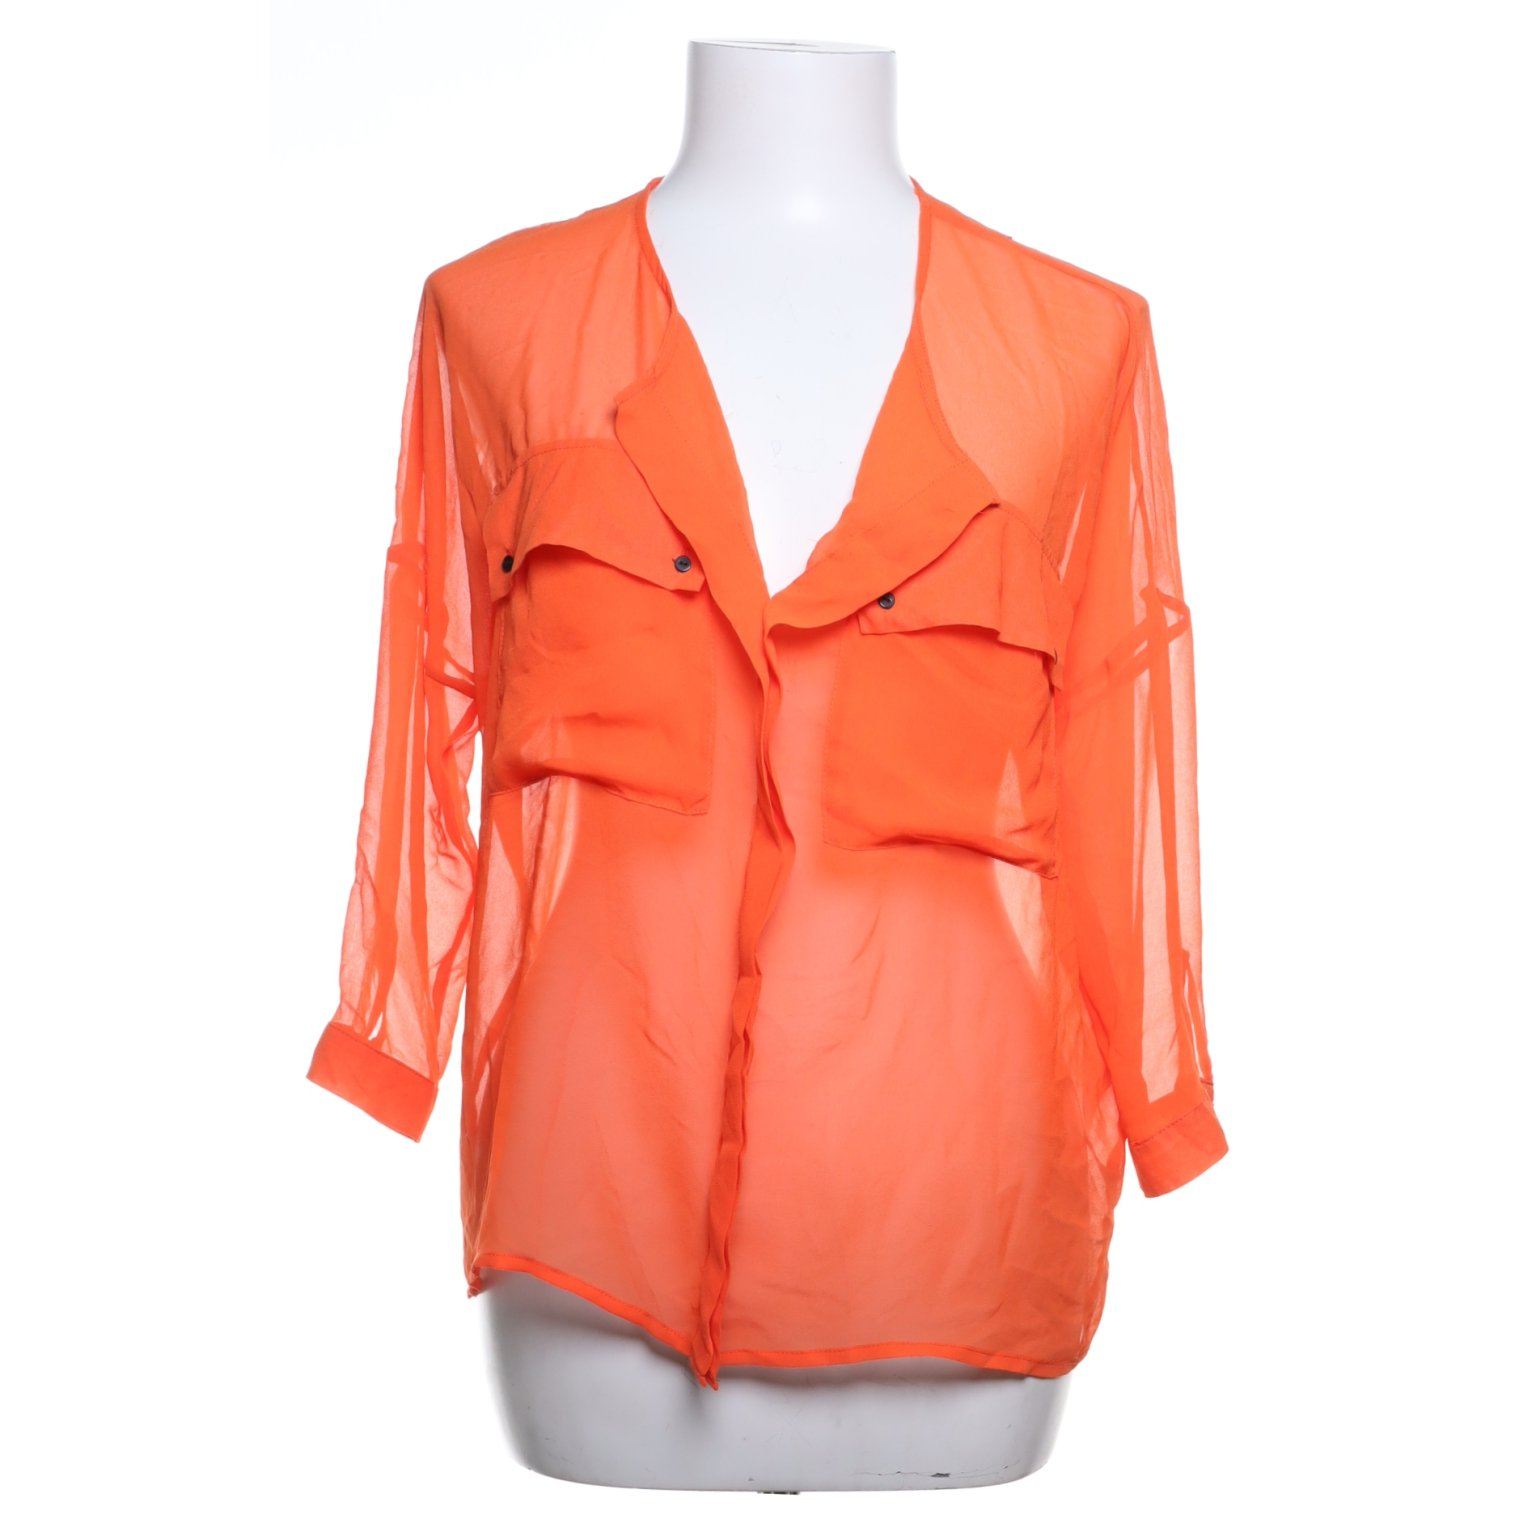 Selected Femme, Blus, Strl: 36, Orange, Polyester